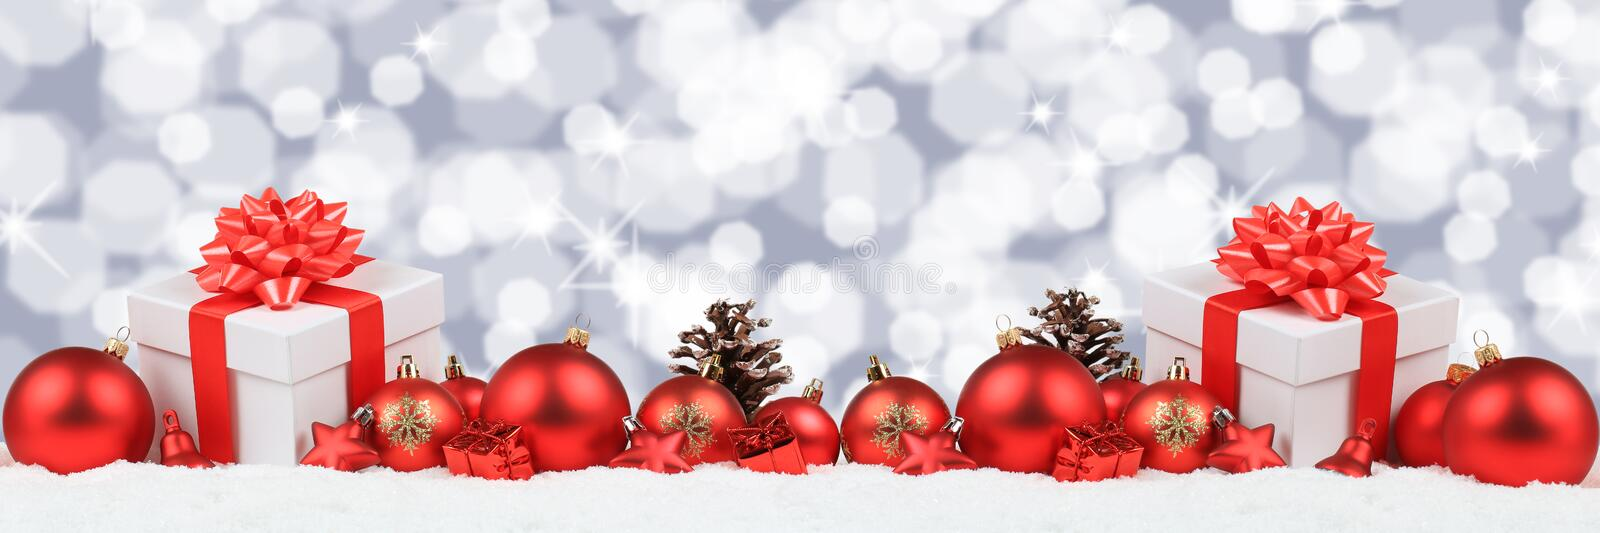 Christmas gifts presents balls banner decoration stars background copyspace royalty free stock images